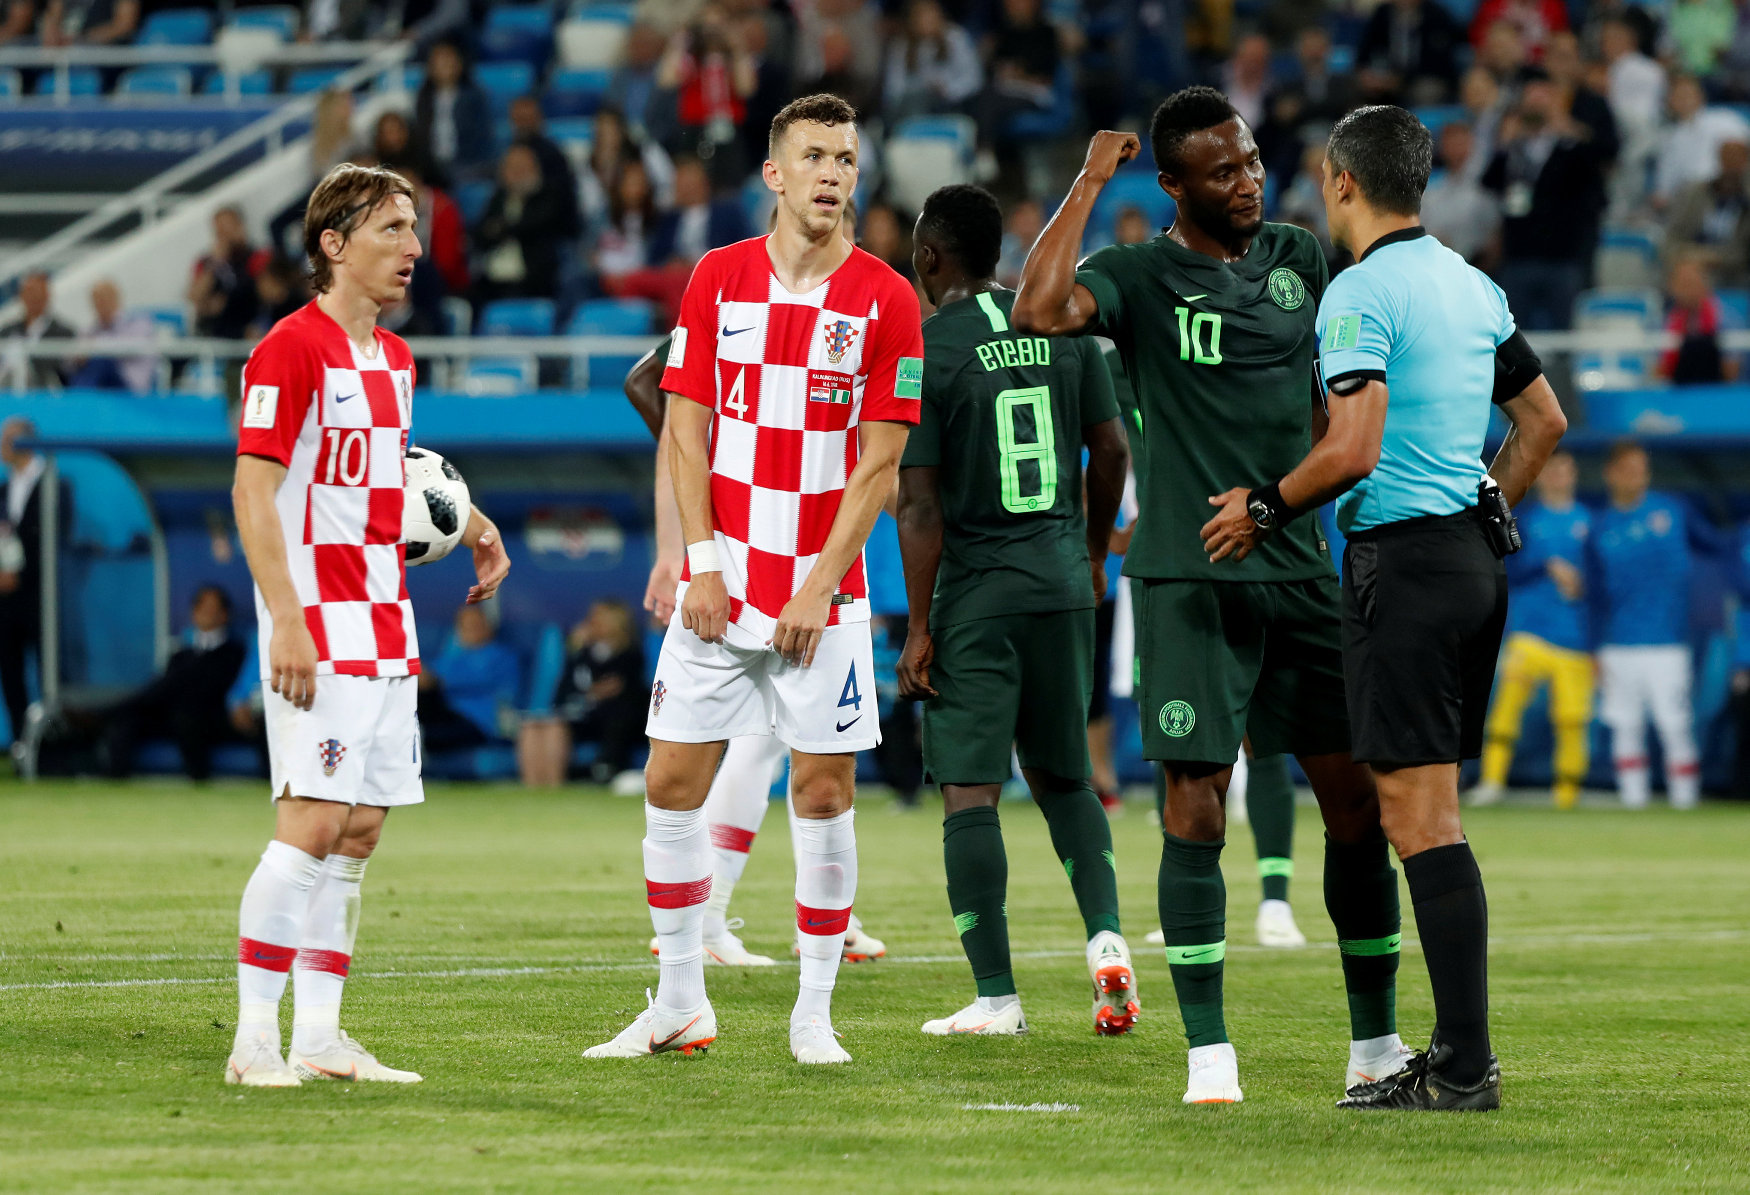 2018-06-16T203145Z_1534002804_RC1E1F095350_RTRMADP_3_SOCCER-WORLDCUP-CRO-NGA